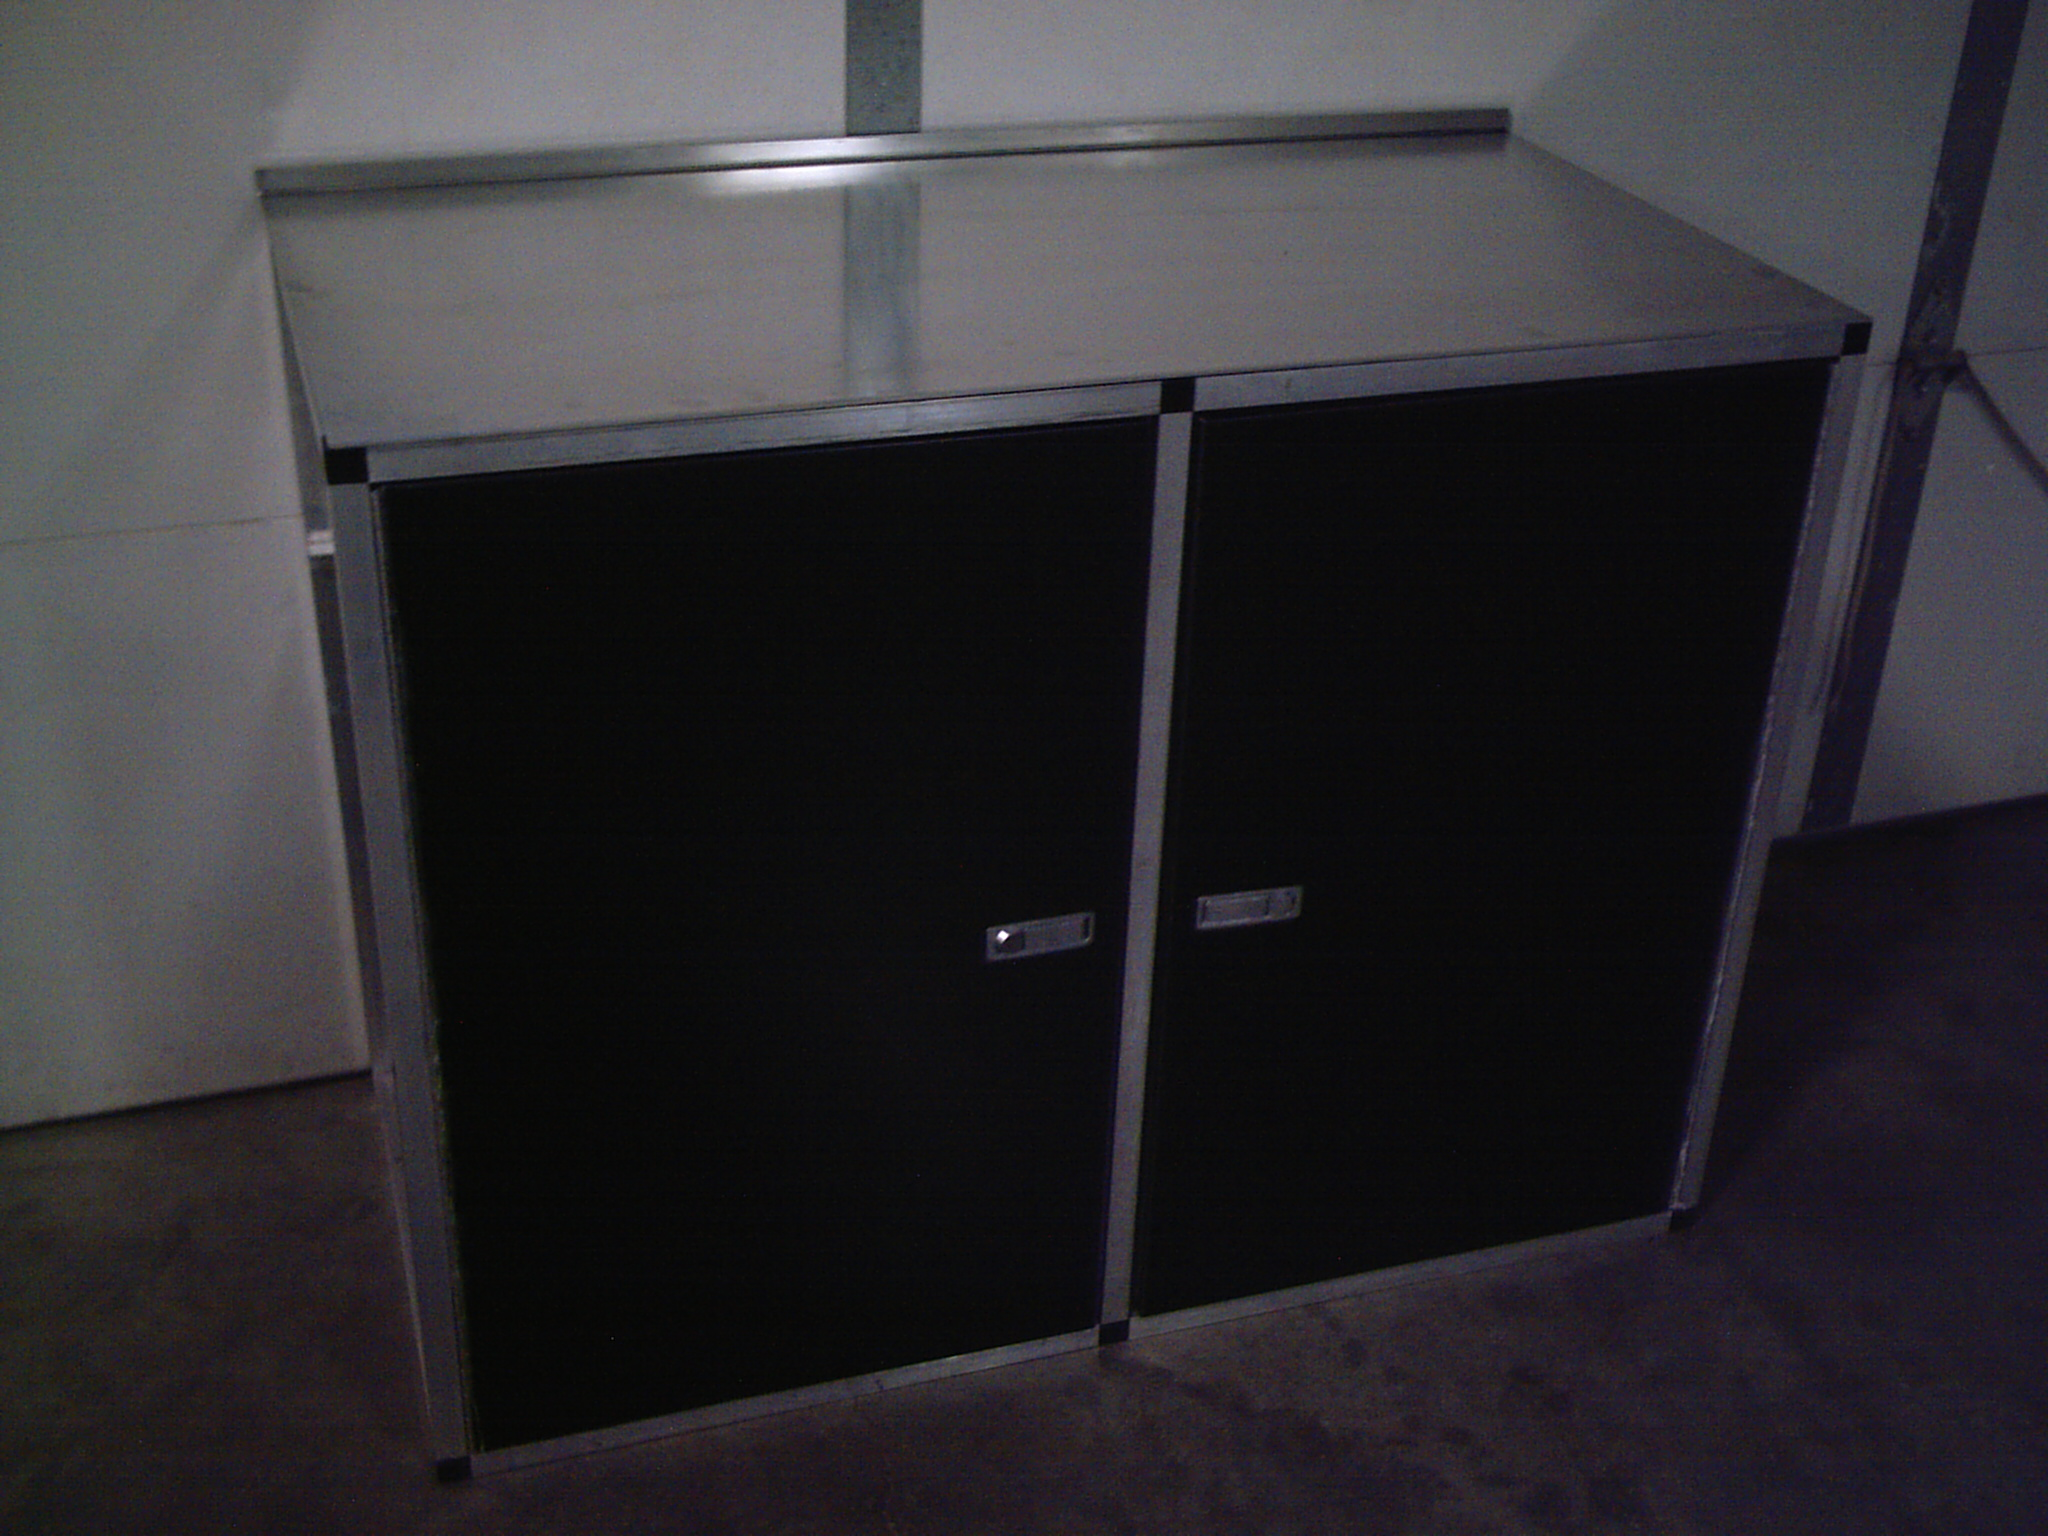 8 39 Combo Deals Full Cabinets